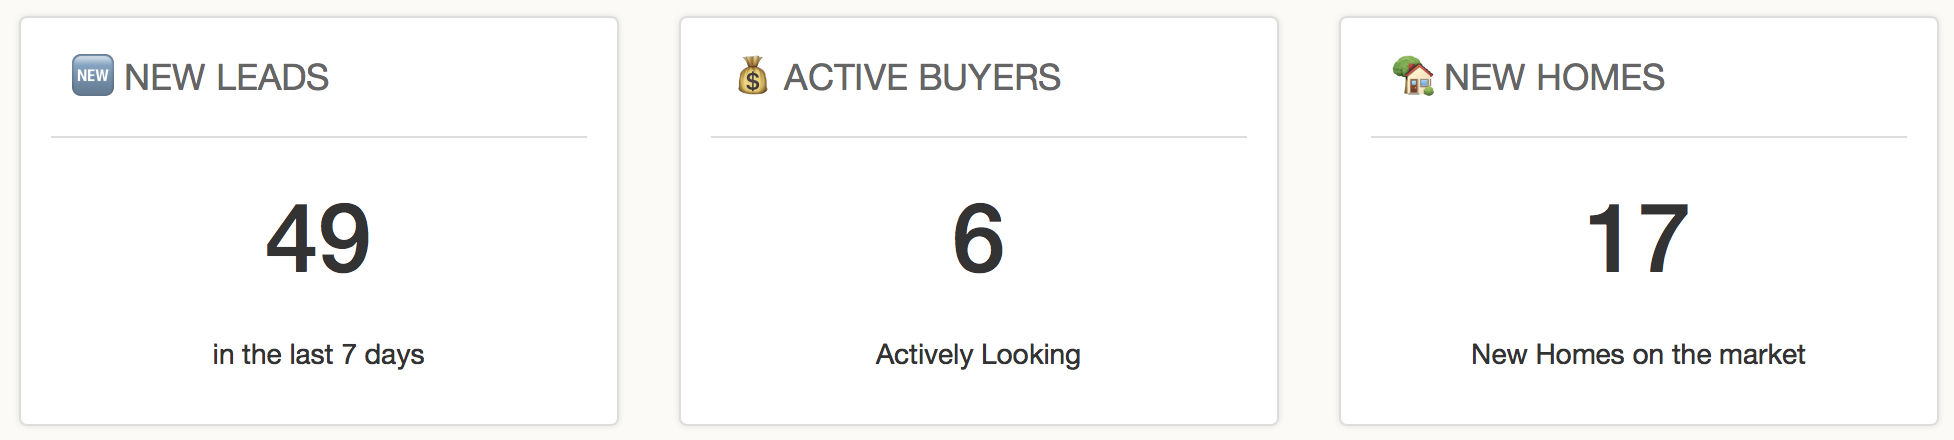 new-leads-active-looking-new-homes